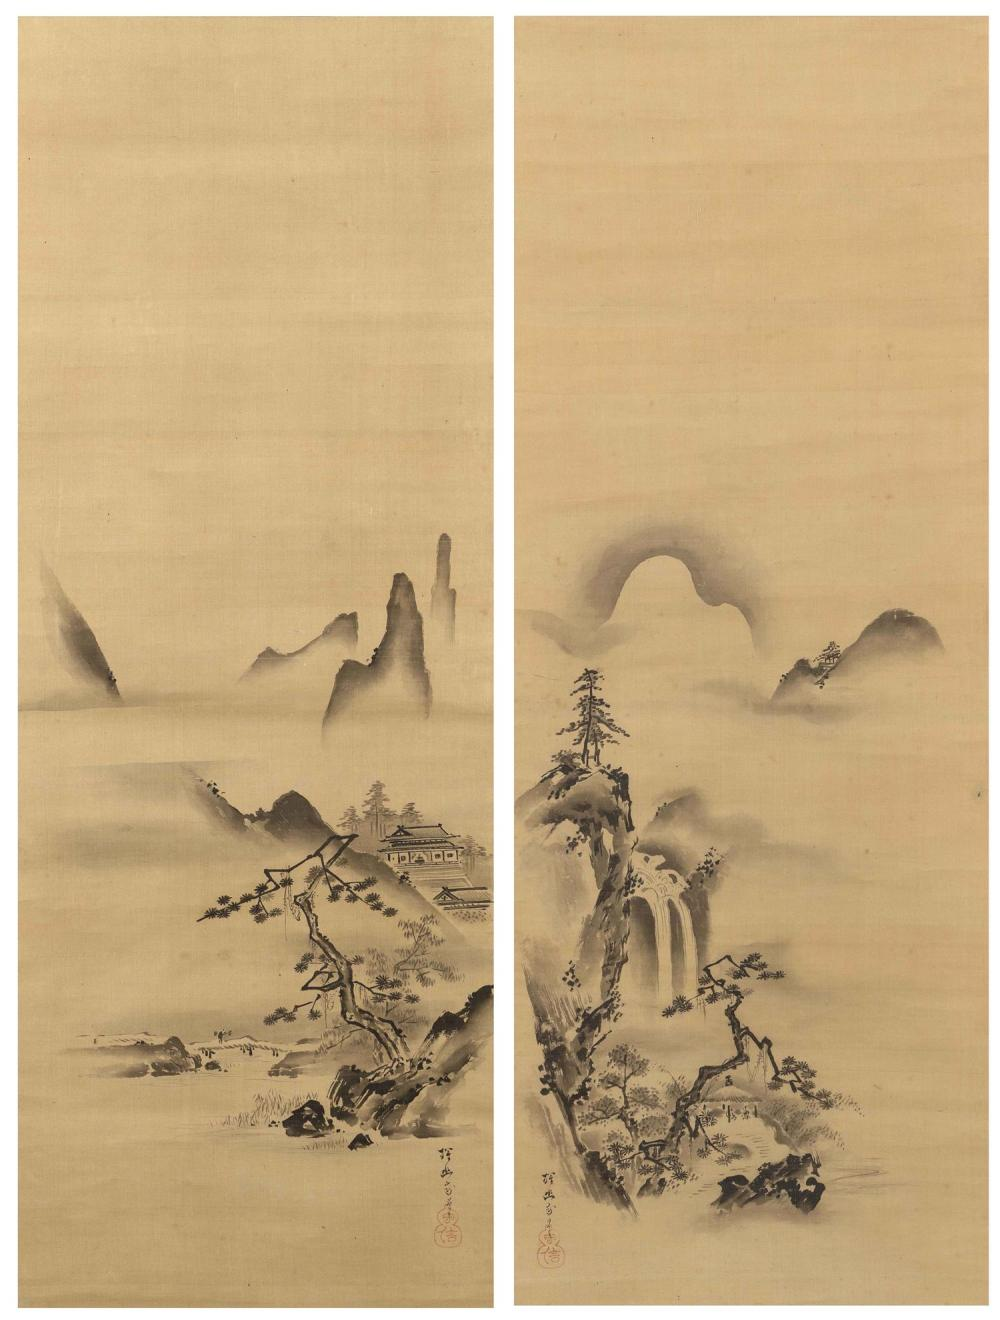 PAIR OF JAPANESE SCROLL PAINTINGS ON SILK BY KANO TANYU One depicts pavilions and a peasant crossing a bridge, and the other depicts...